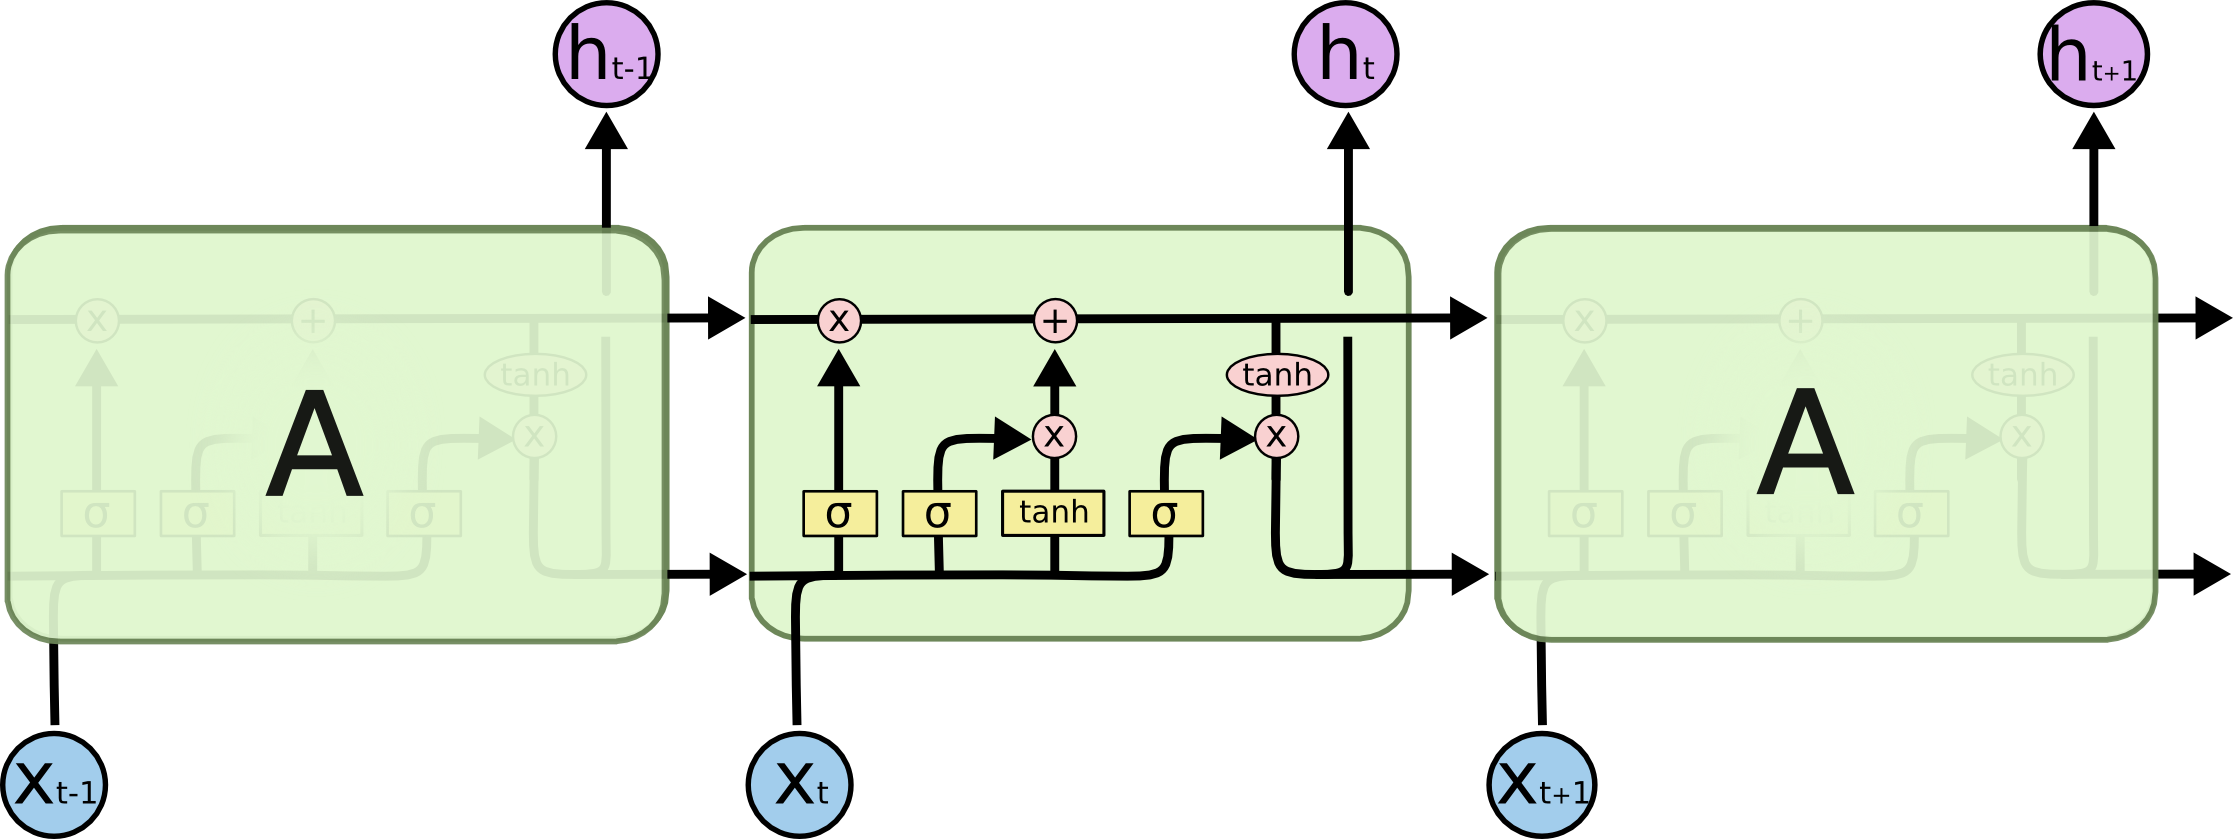 A LSTM neural network.